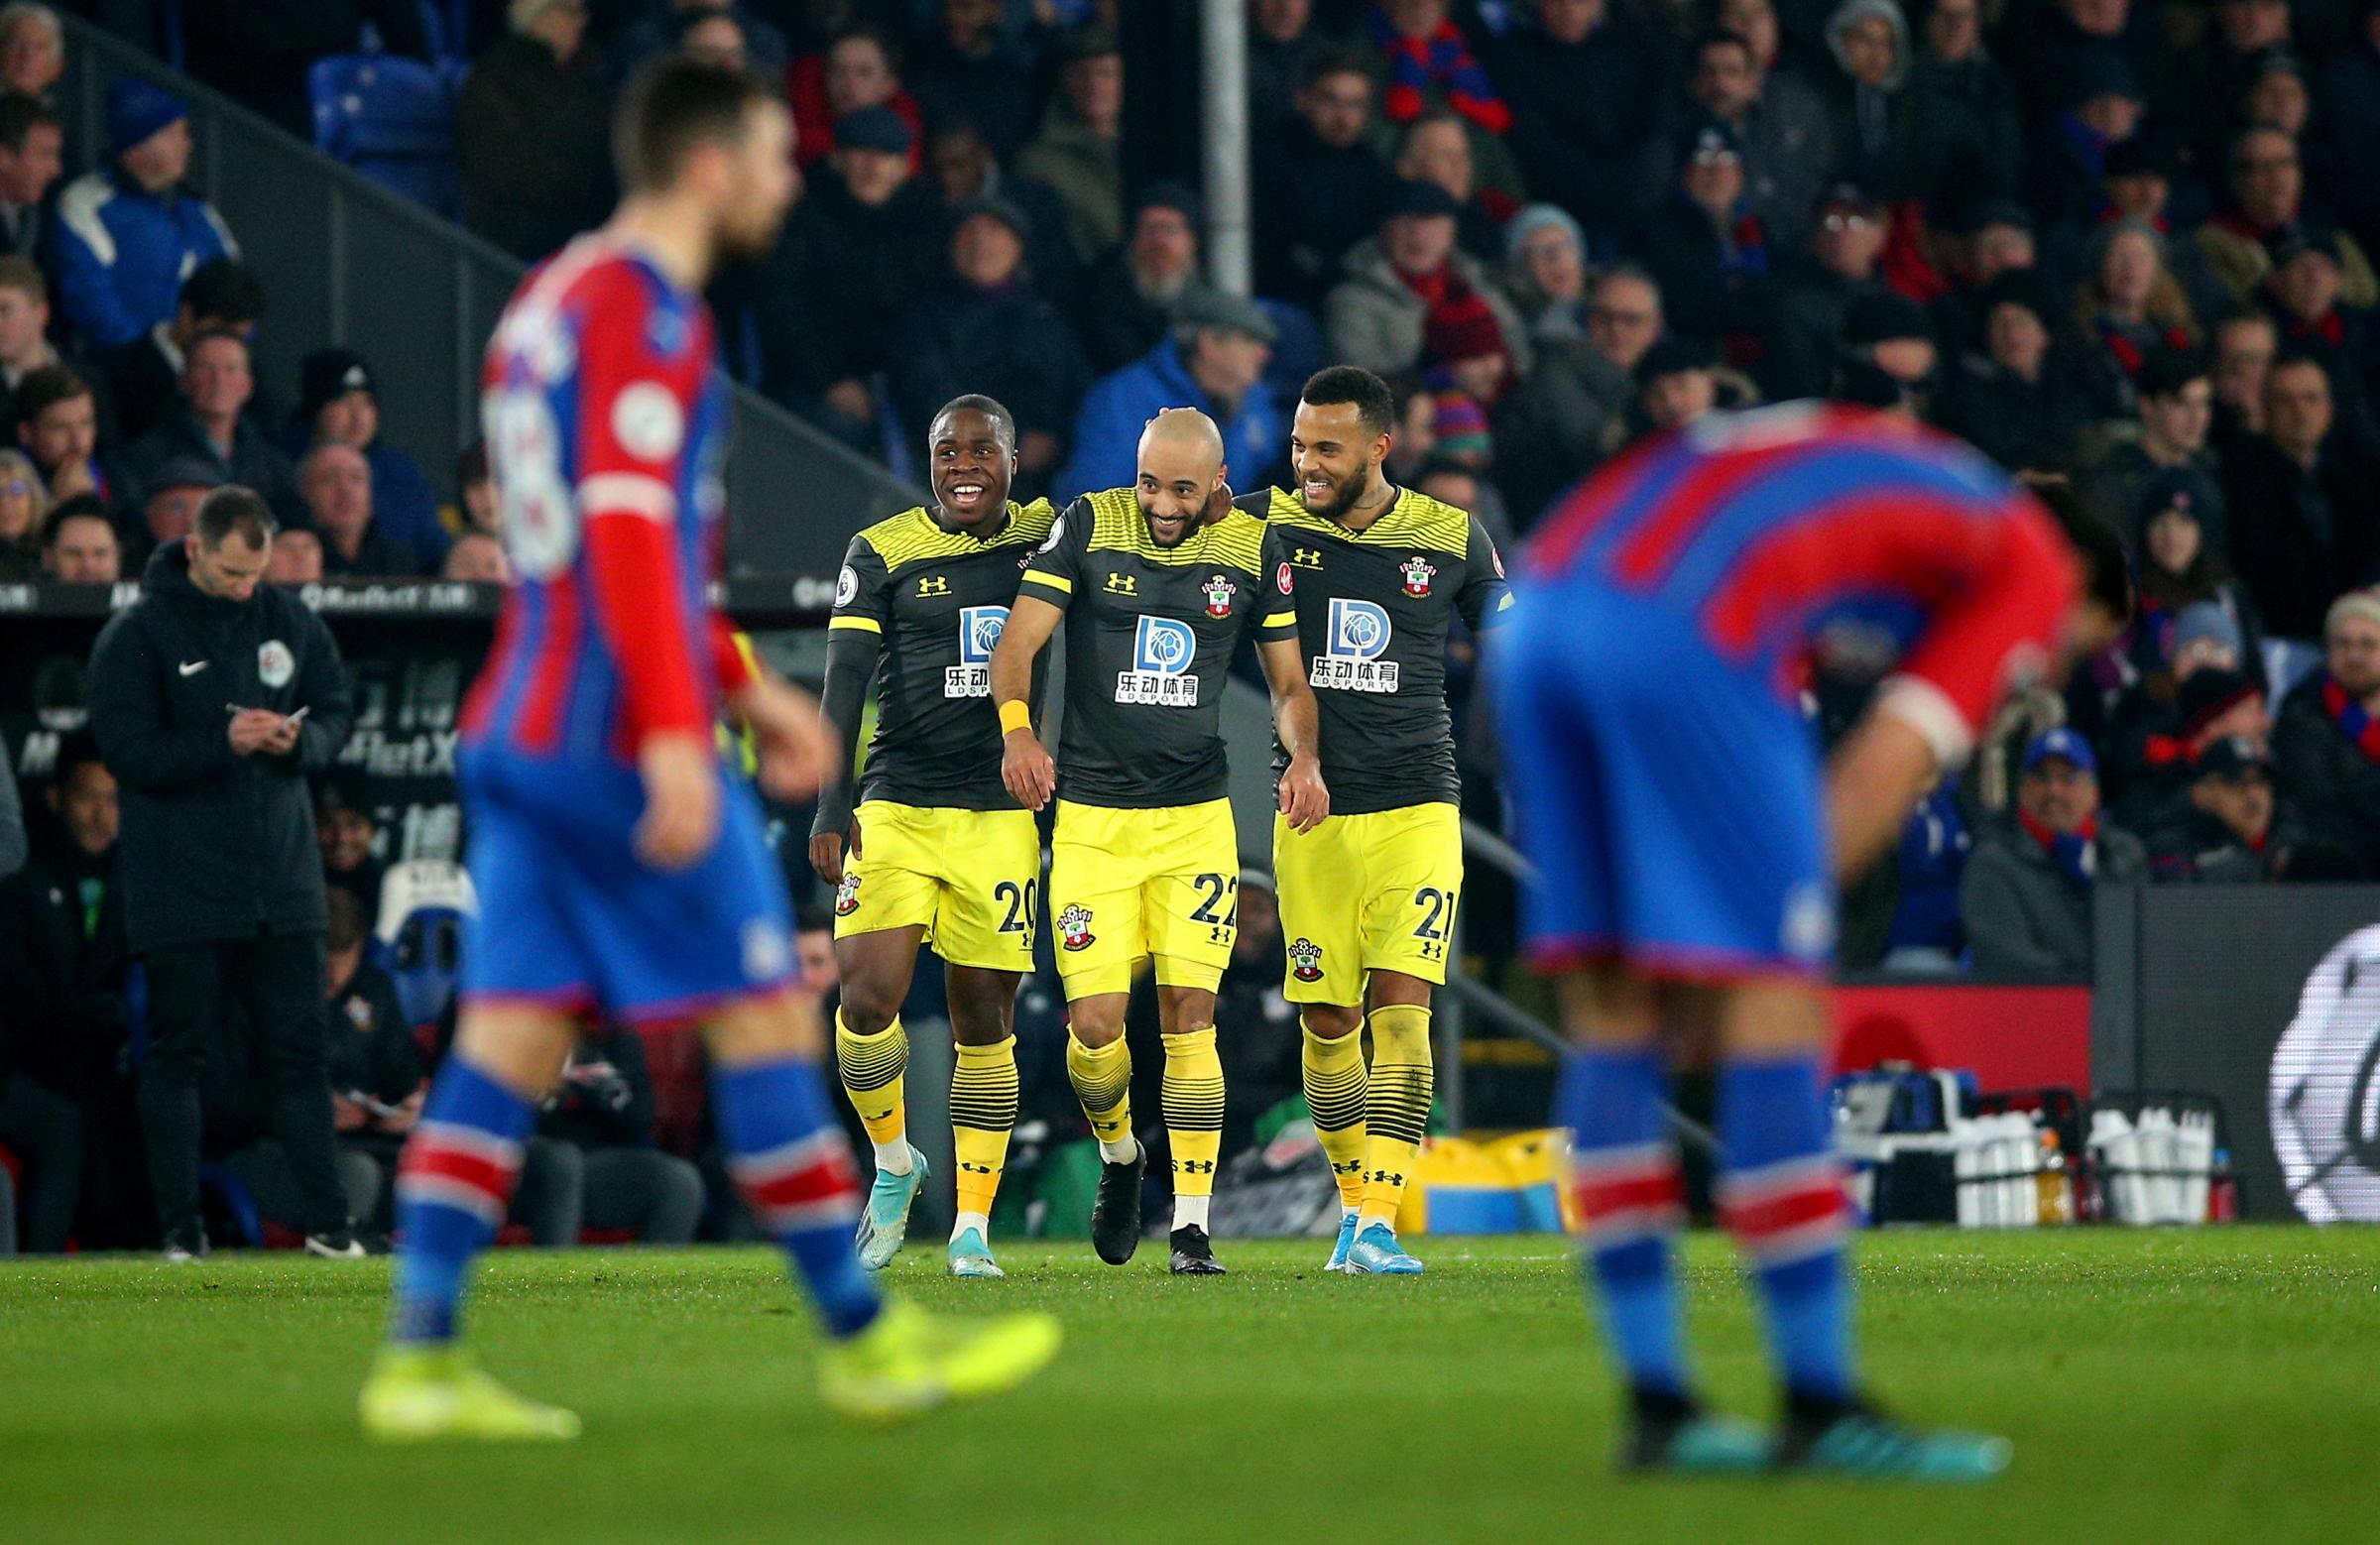 REPORT: Crystal Palace 0 Southampton 2 - Redmond and Armstrong strike to sink sorry Eagles